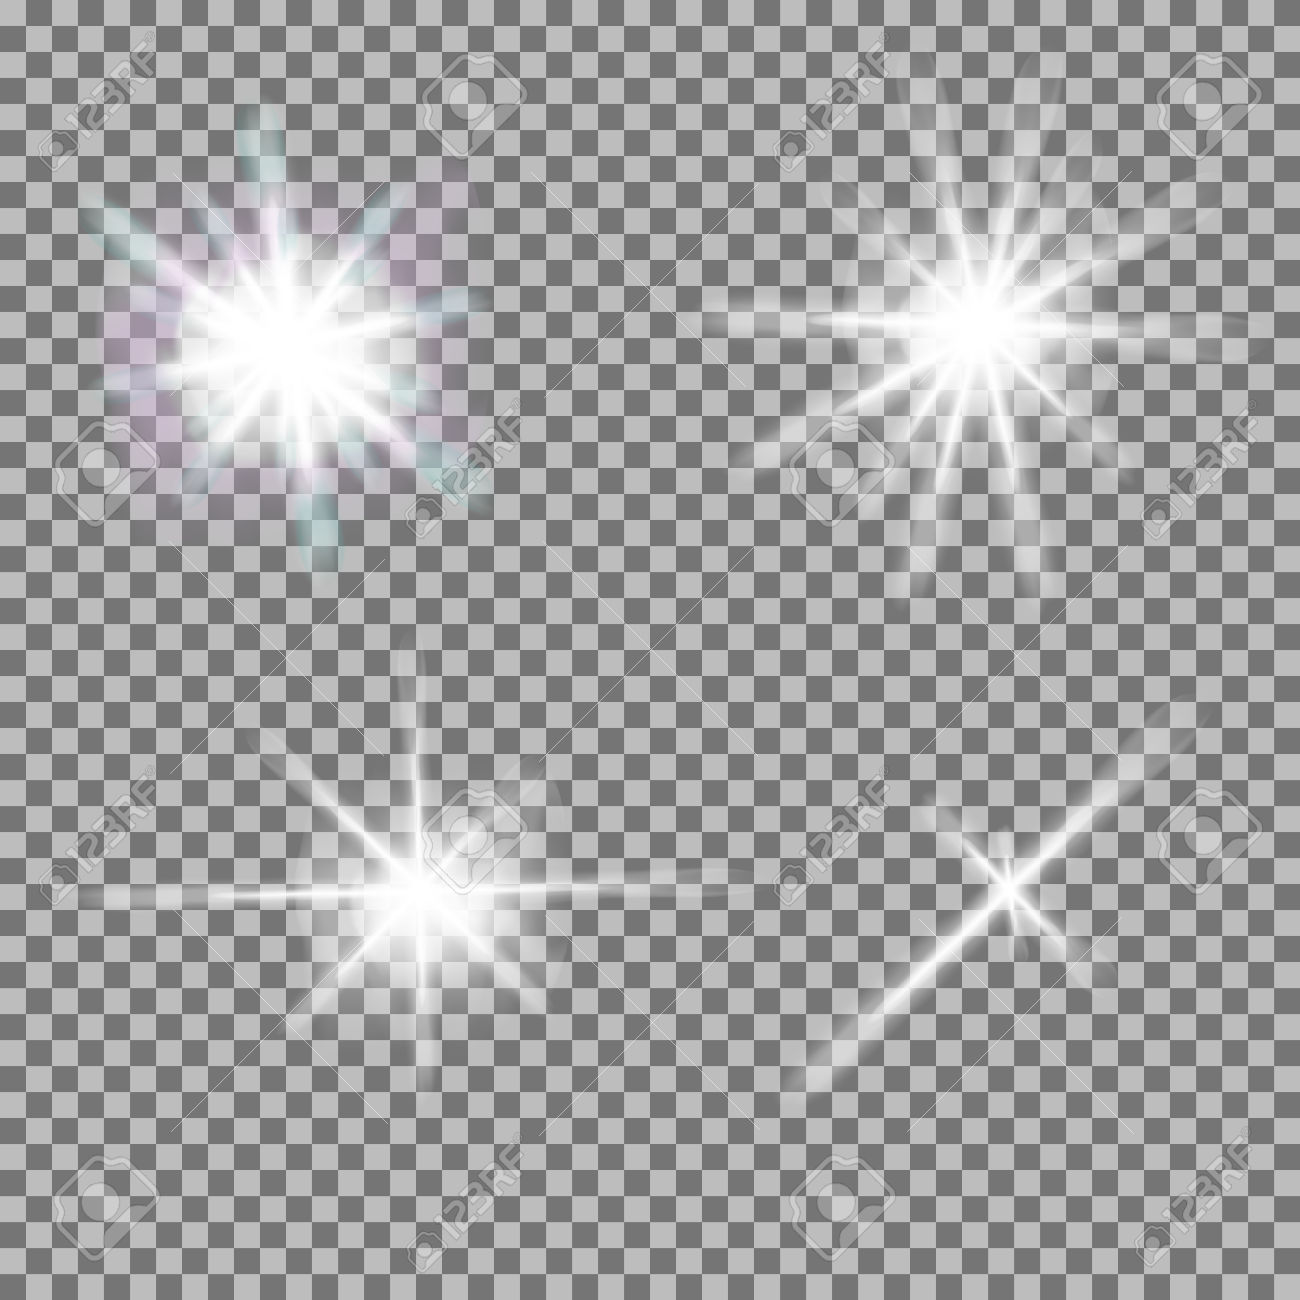 Light burst clipart transparent background.